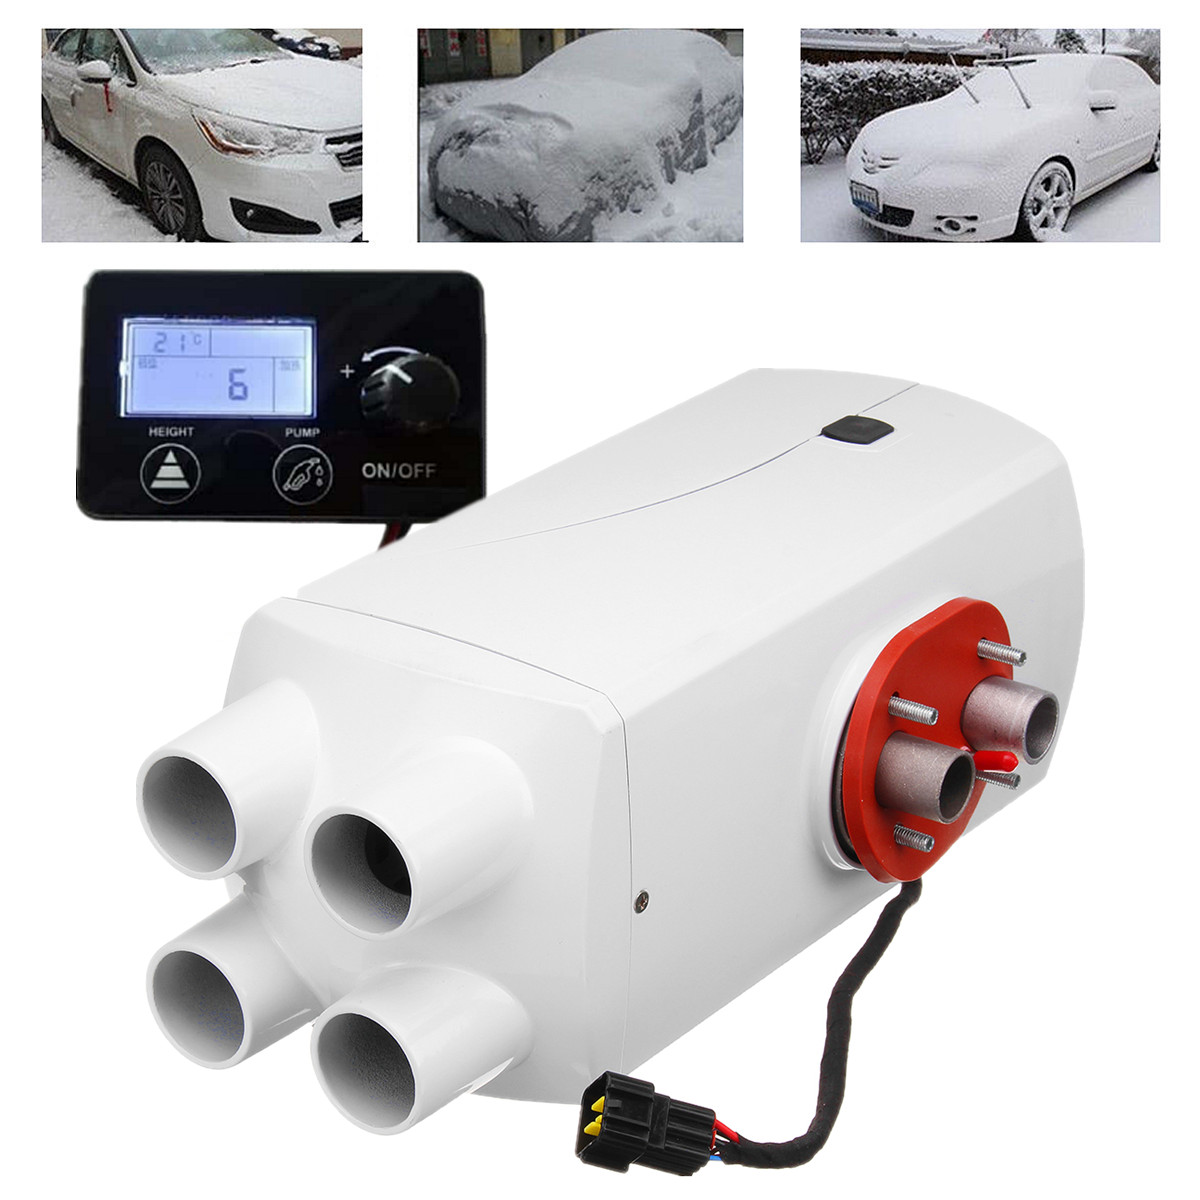 Heater Switch 5000W/8000W Diesel Air Parking Heater Single Hole Diesel Heating Parking Air HeaterHeater Switch 5000W/8000W Diesel Air Parking Heater Single Hole Diesel Heating Parking Air Heater